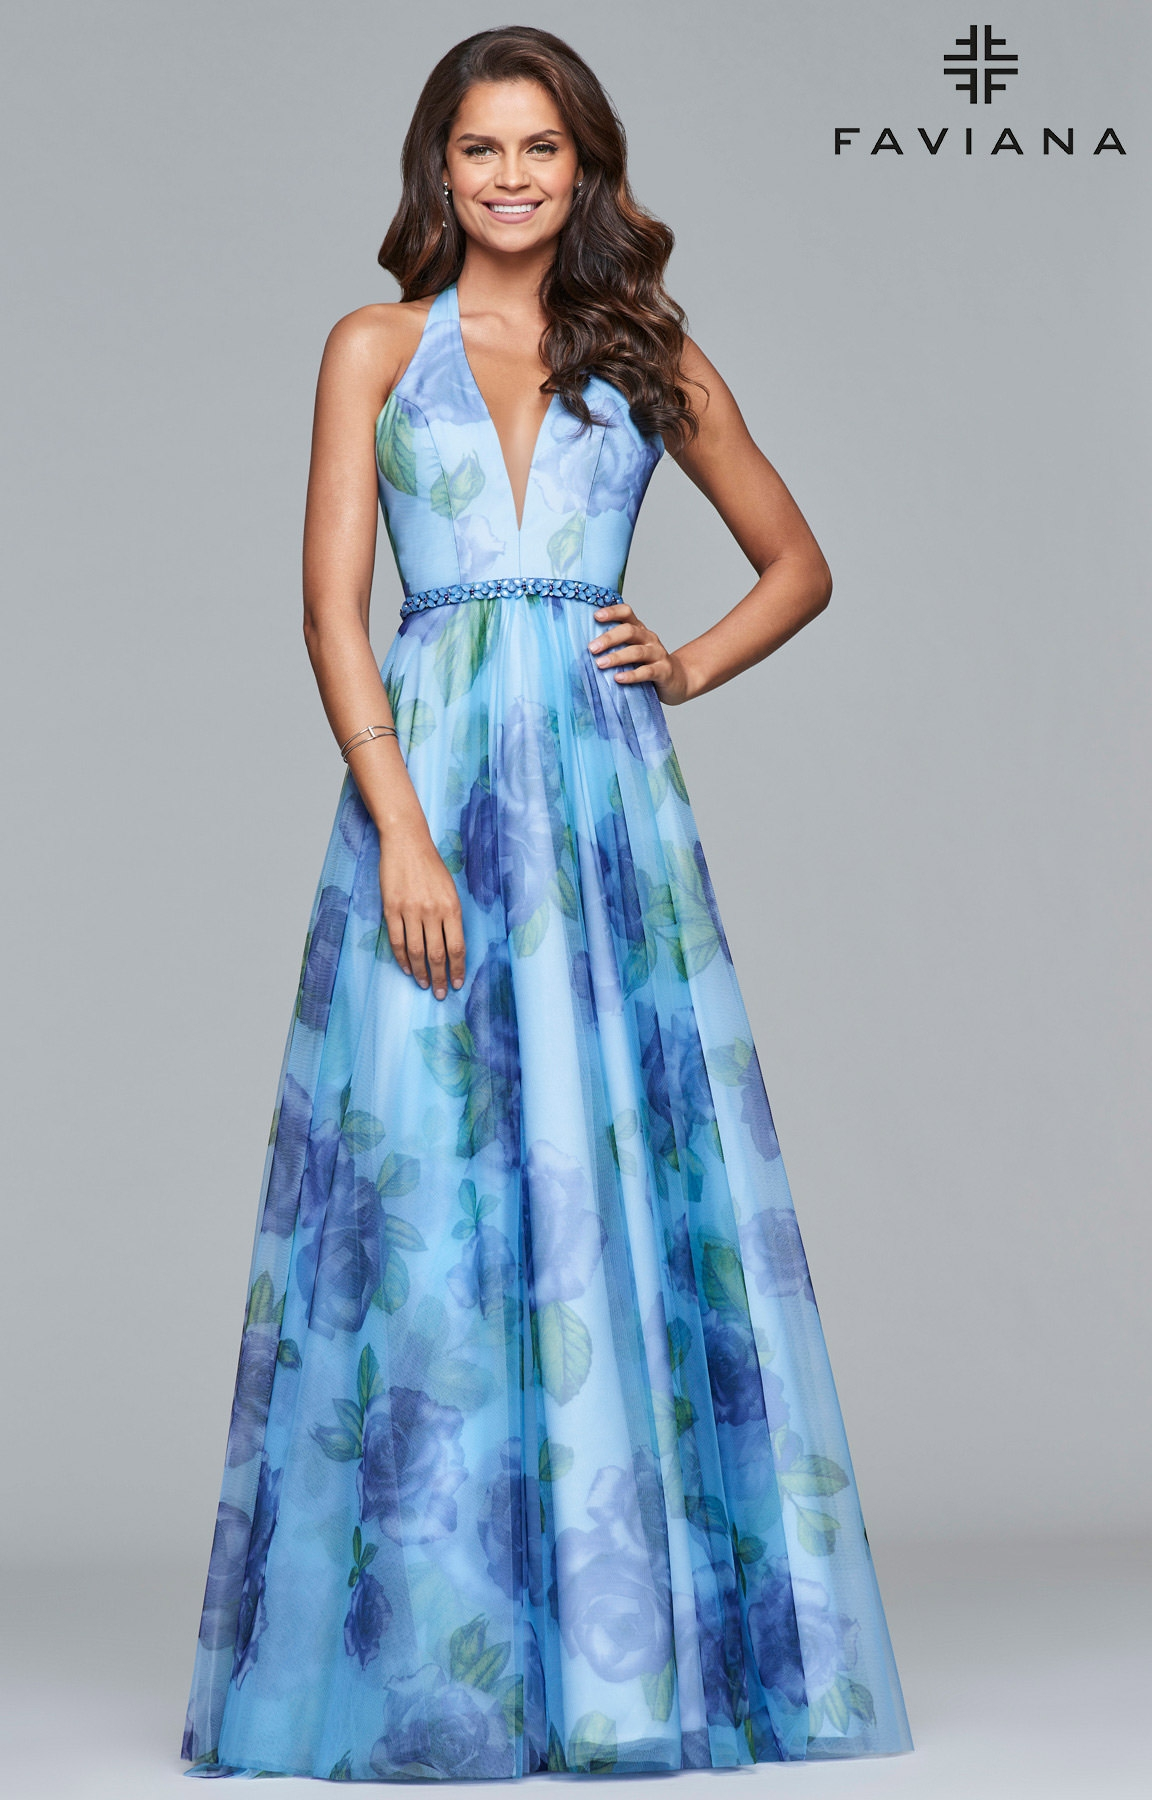 Faviana S10036 - V-Neck Floral Printed Tulle Prom Dress